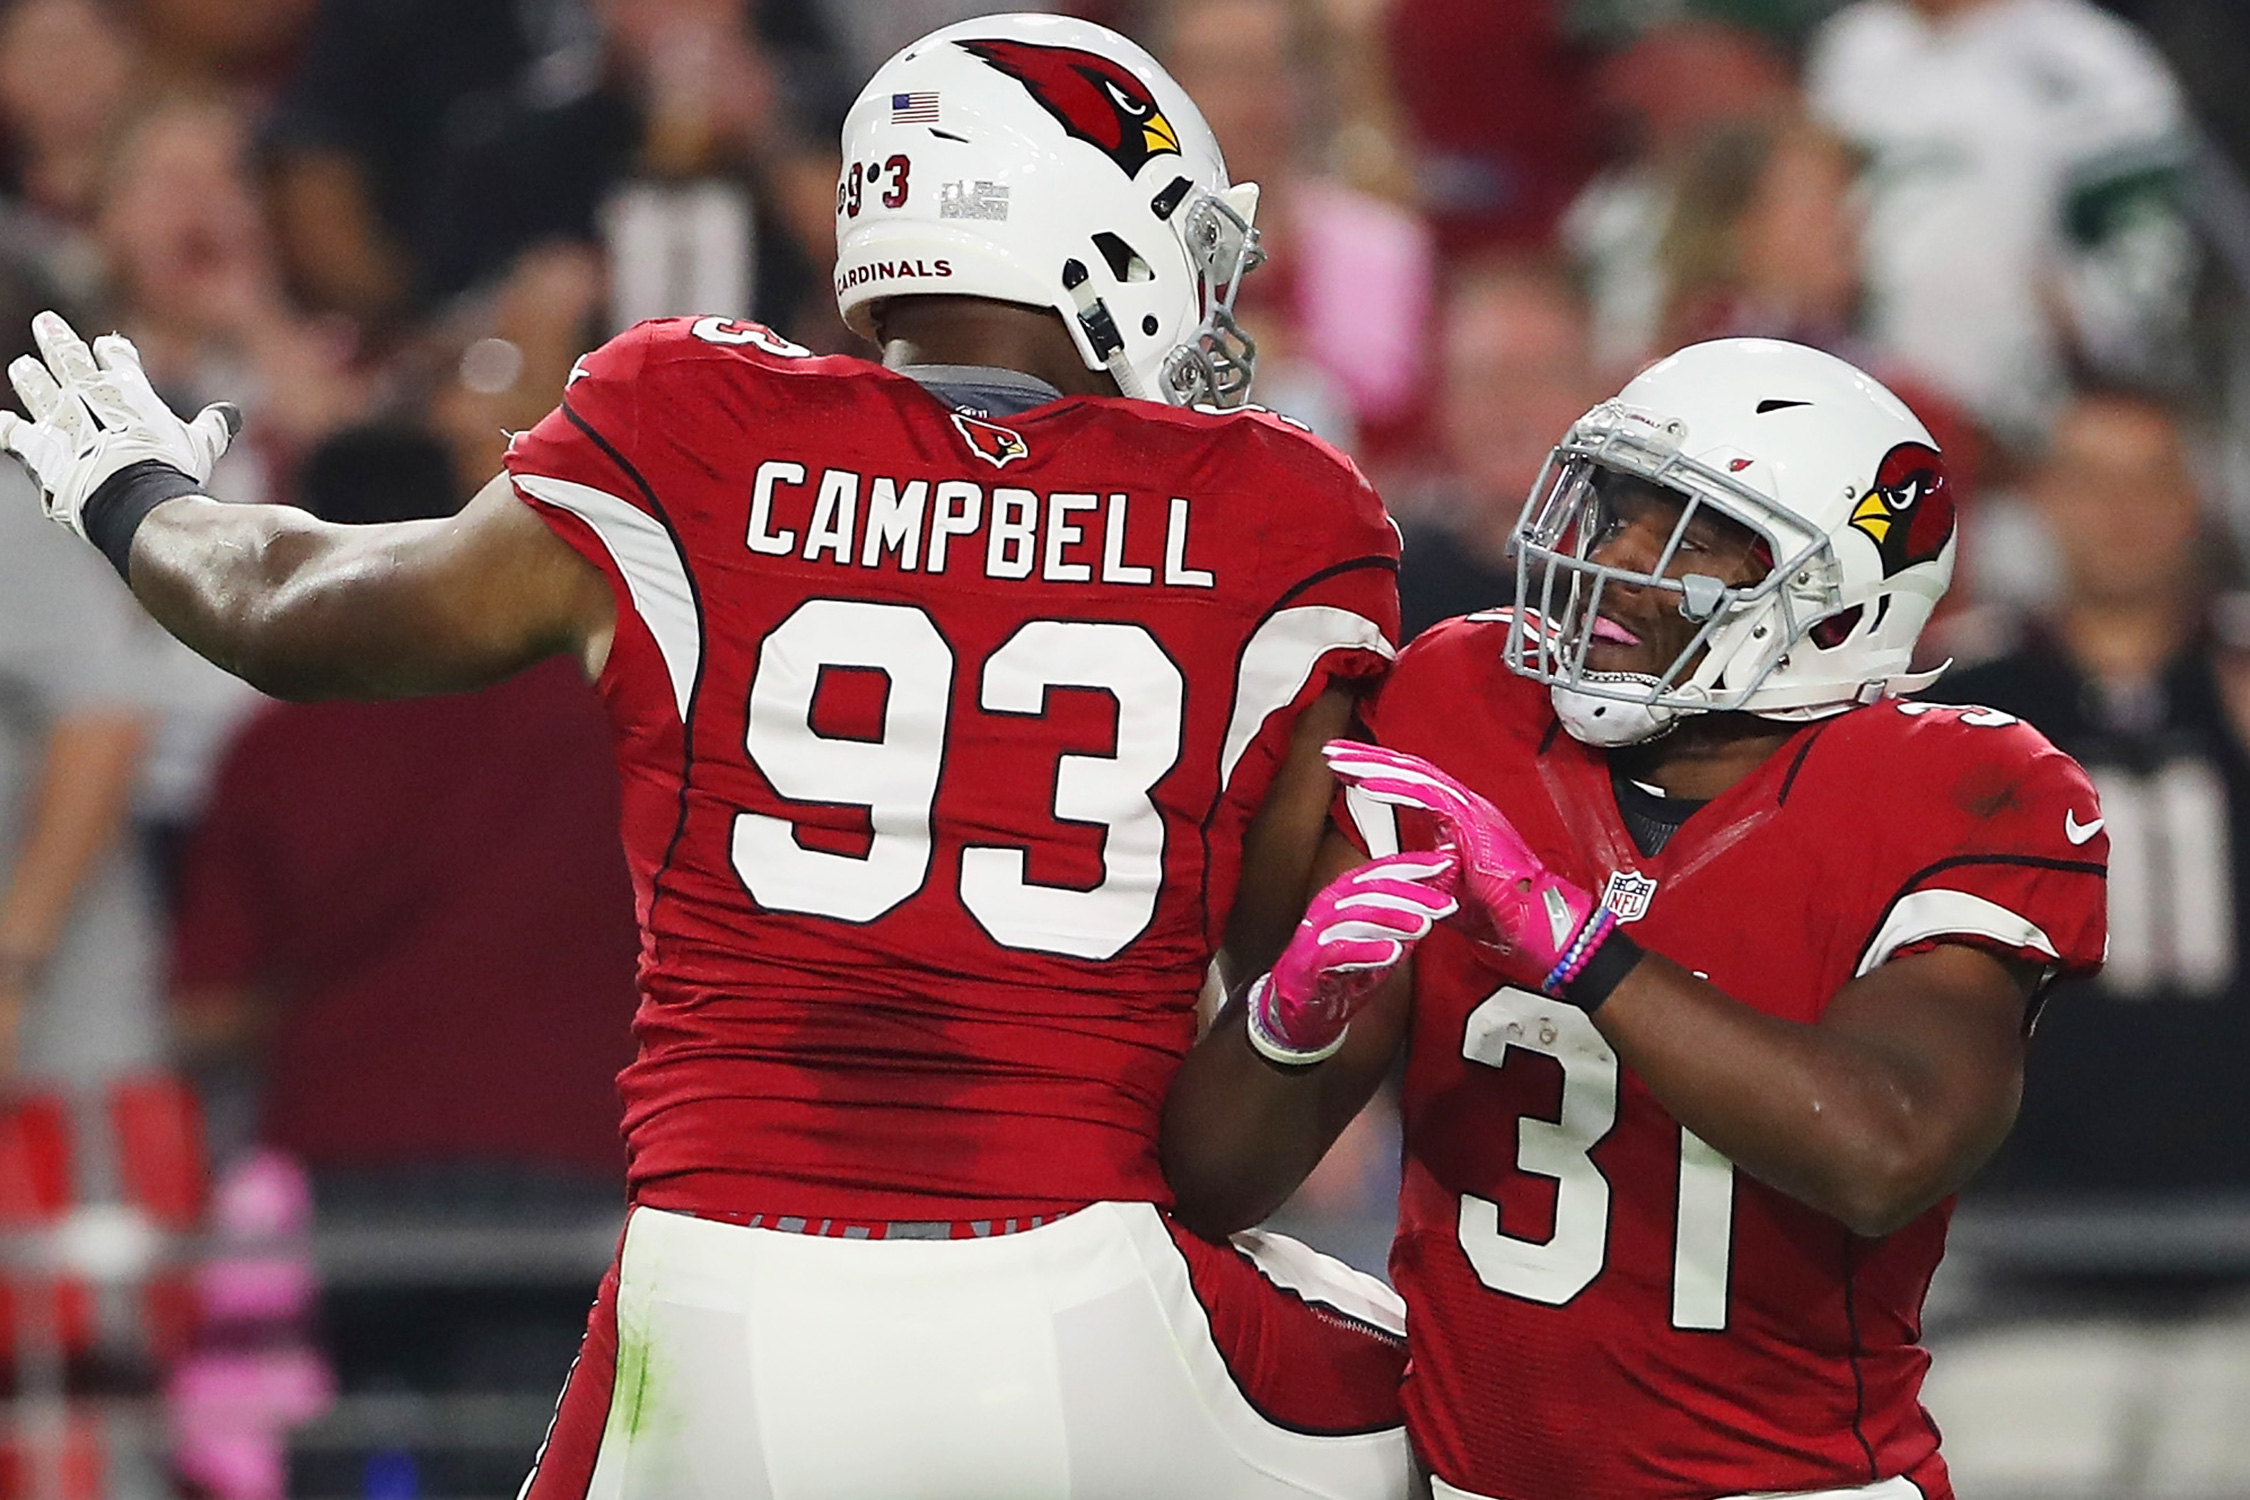 Campbell is a reliable staple of the Cardinals' defense, and he's been consistent again this year outside of his glamour stats: two sacks, three passes defended, a safety forced and an interception.